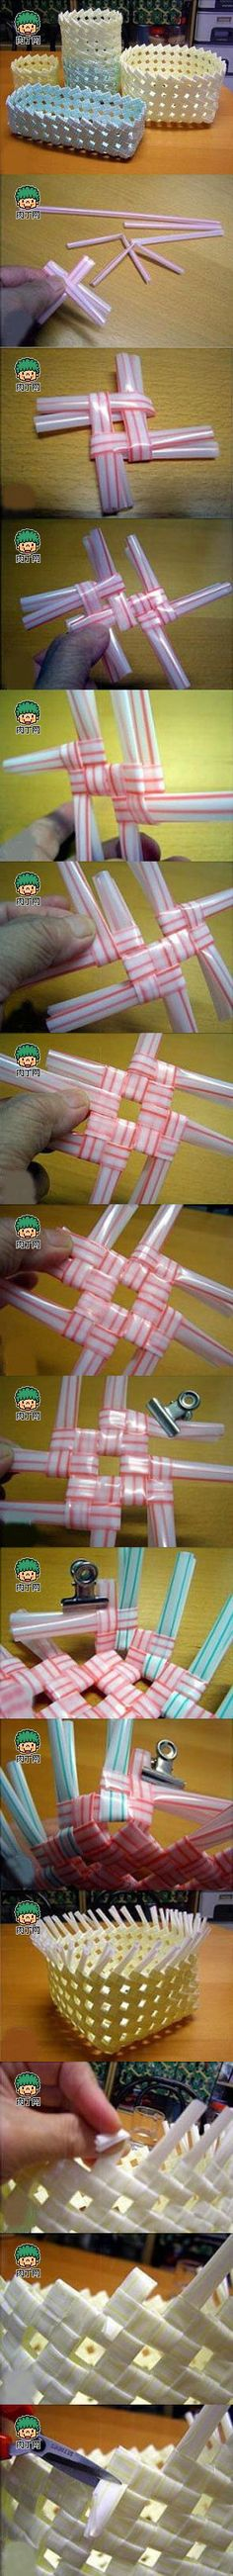 making containers out of plastic drinking straws